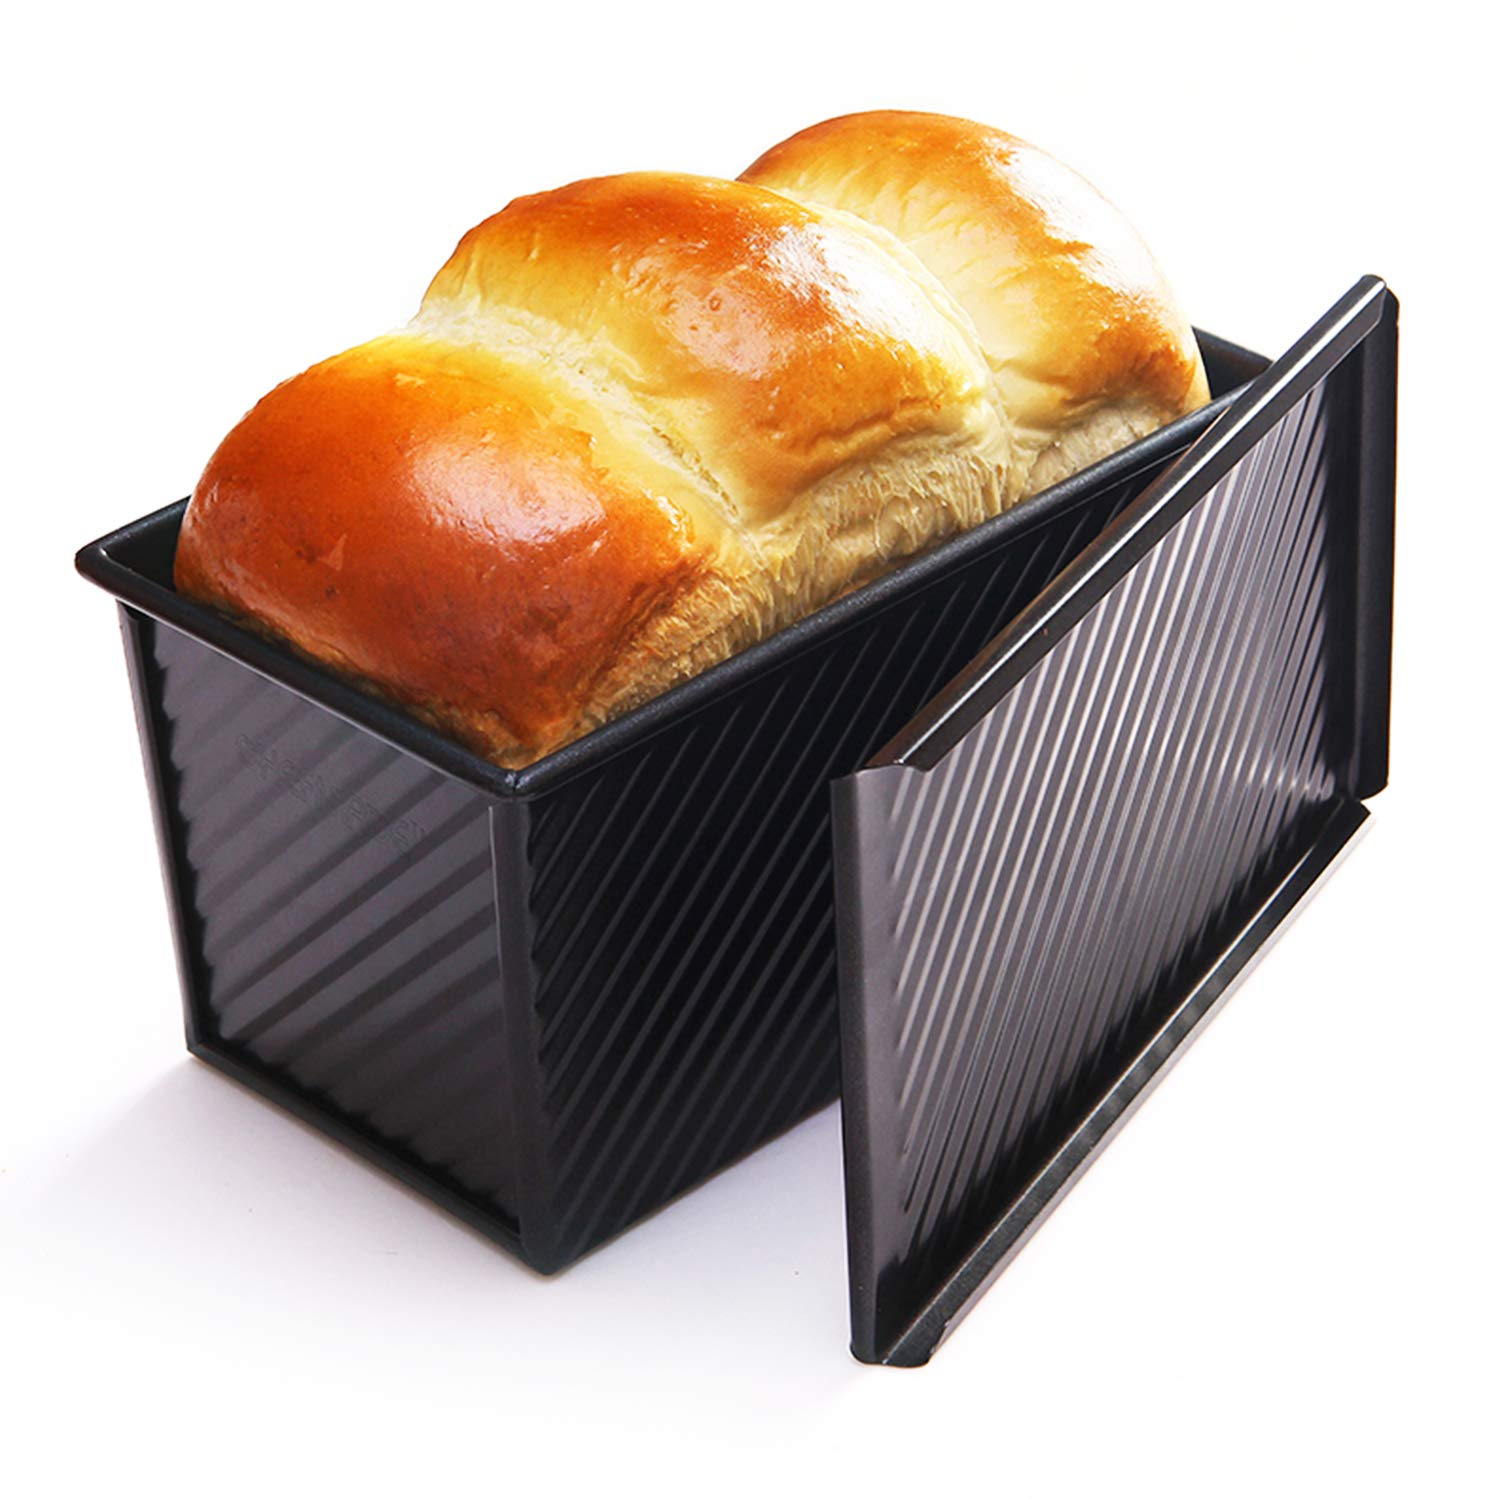 CHEFMADE Loaf Pan with Lid, Non-Stick Bakeware Carbon Steel Bread Toast Mold with Cover for Baking Bread FDA Approved - BLack by CHEFMADE